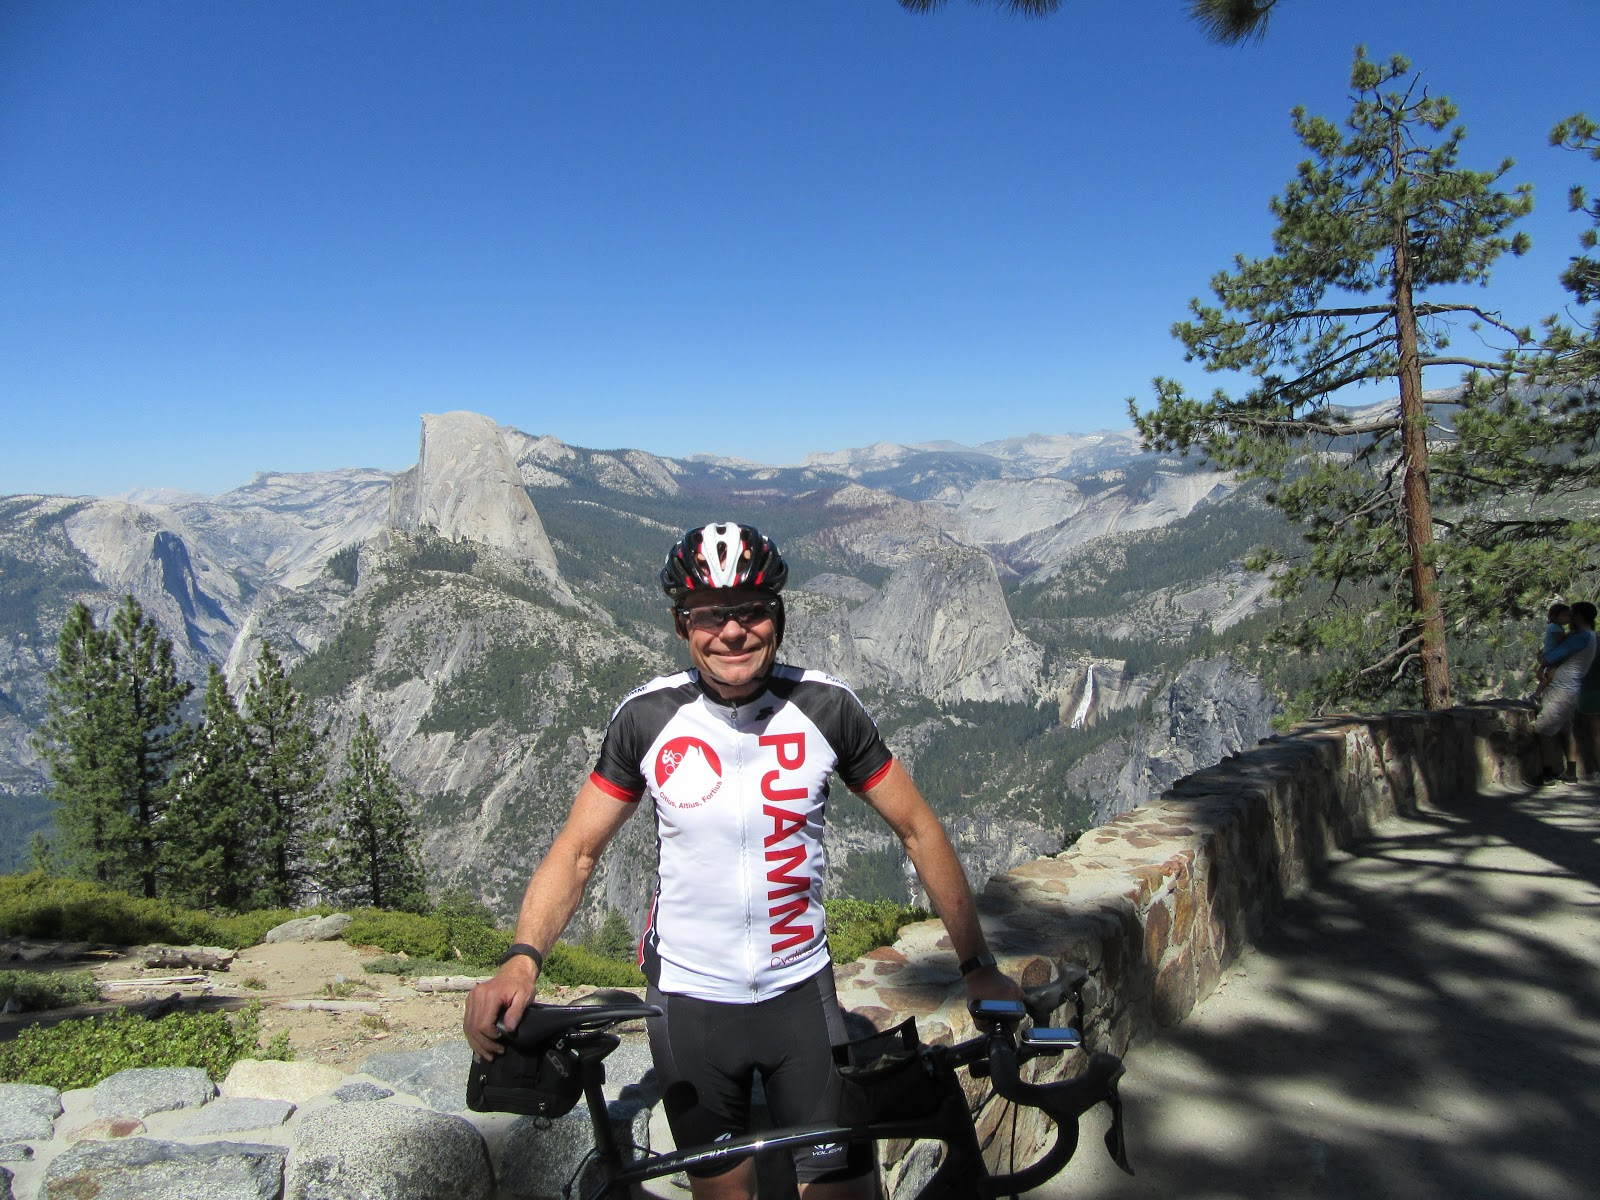 CyclingTop US Bike Climbs - PJAMM cyclist with bike at Glacier Point, Yosemite National Park - Half Dome, Nevada Falls